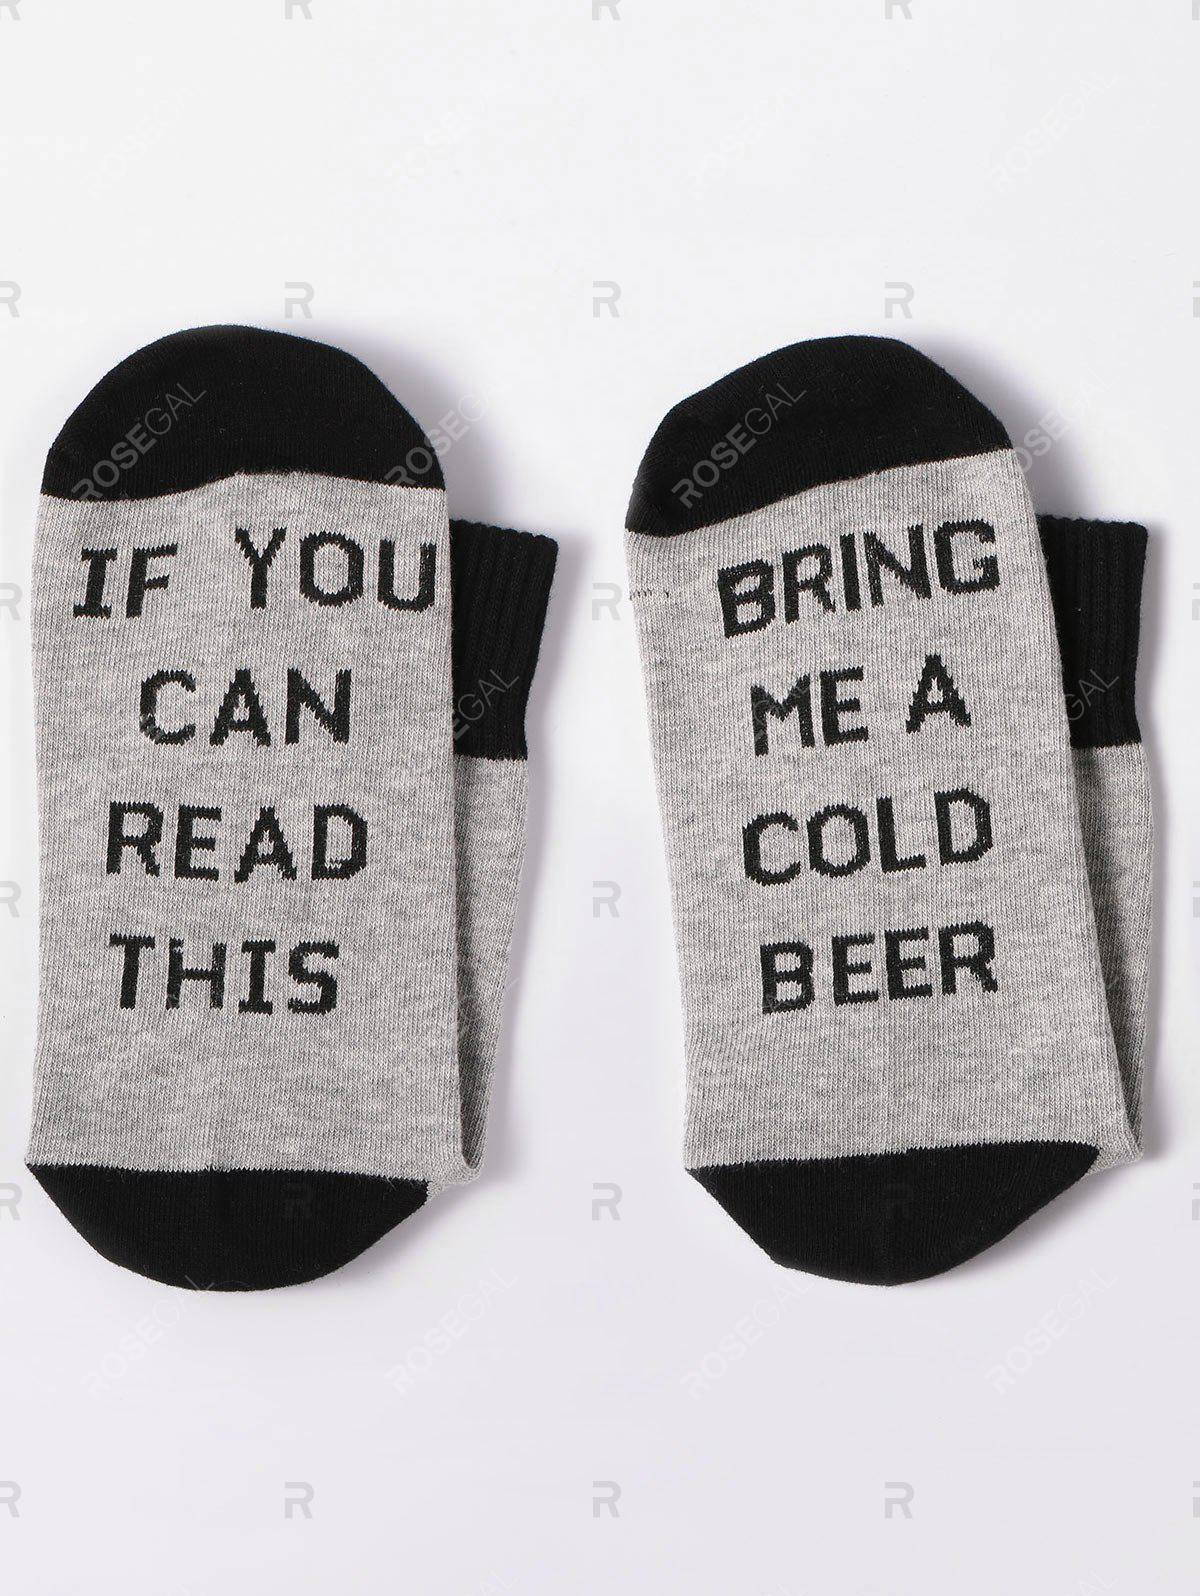 Bring Me A Color Beer Print Ankle SocksACCESSORIES<br><br>Color: GRAY; Type: Socks; Group: Adult; Gender: Unisex; Style: Fashion; Pattern Type: Letter; Material: Spandex; Weight: 0.0900kg; Package Contents: 1 x Socks(Pair);